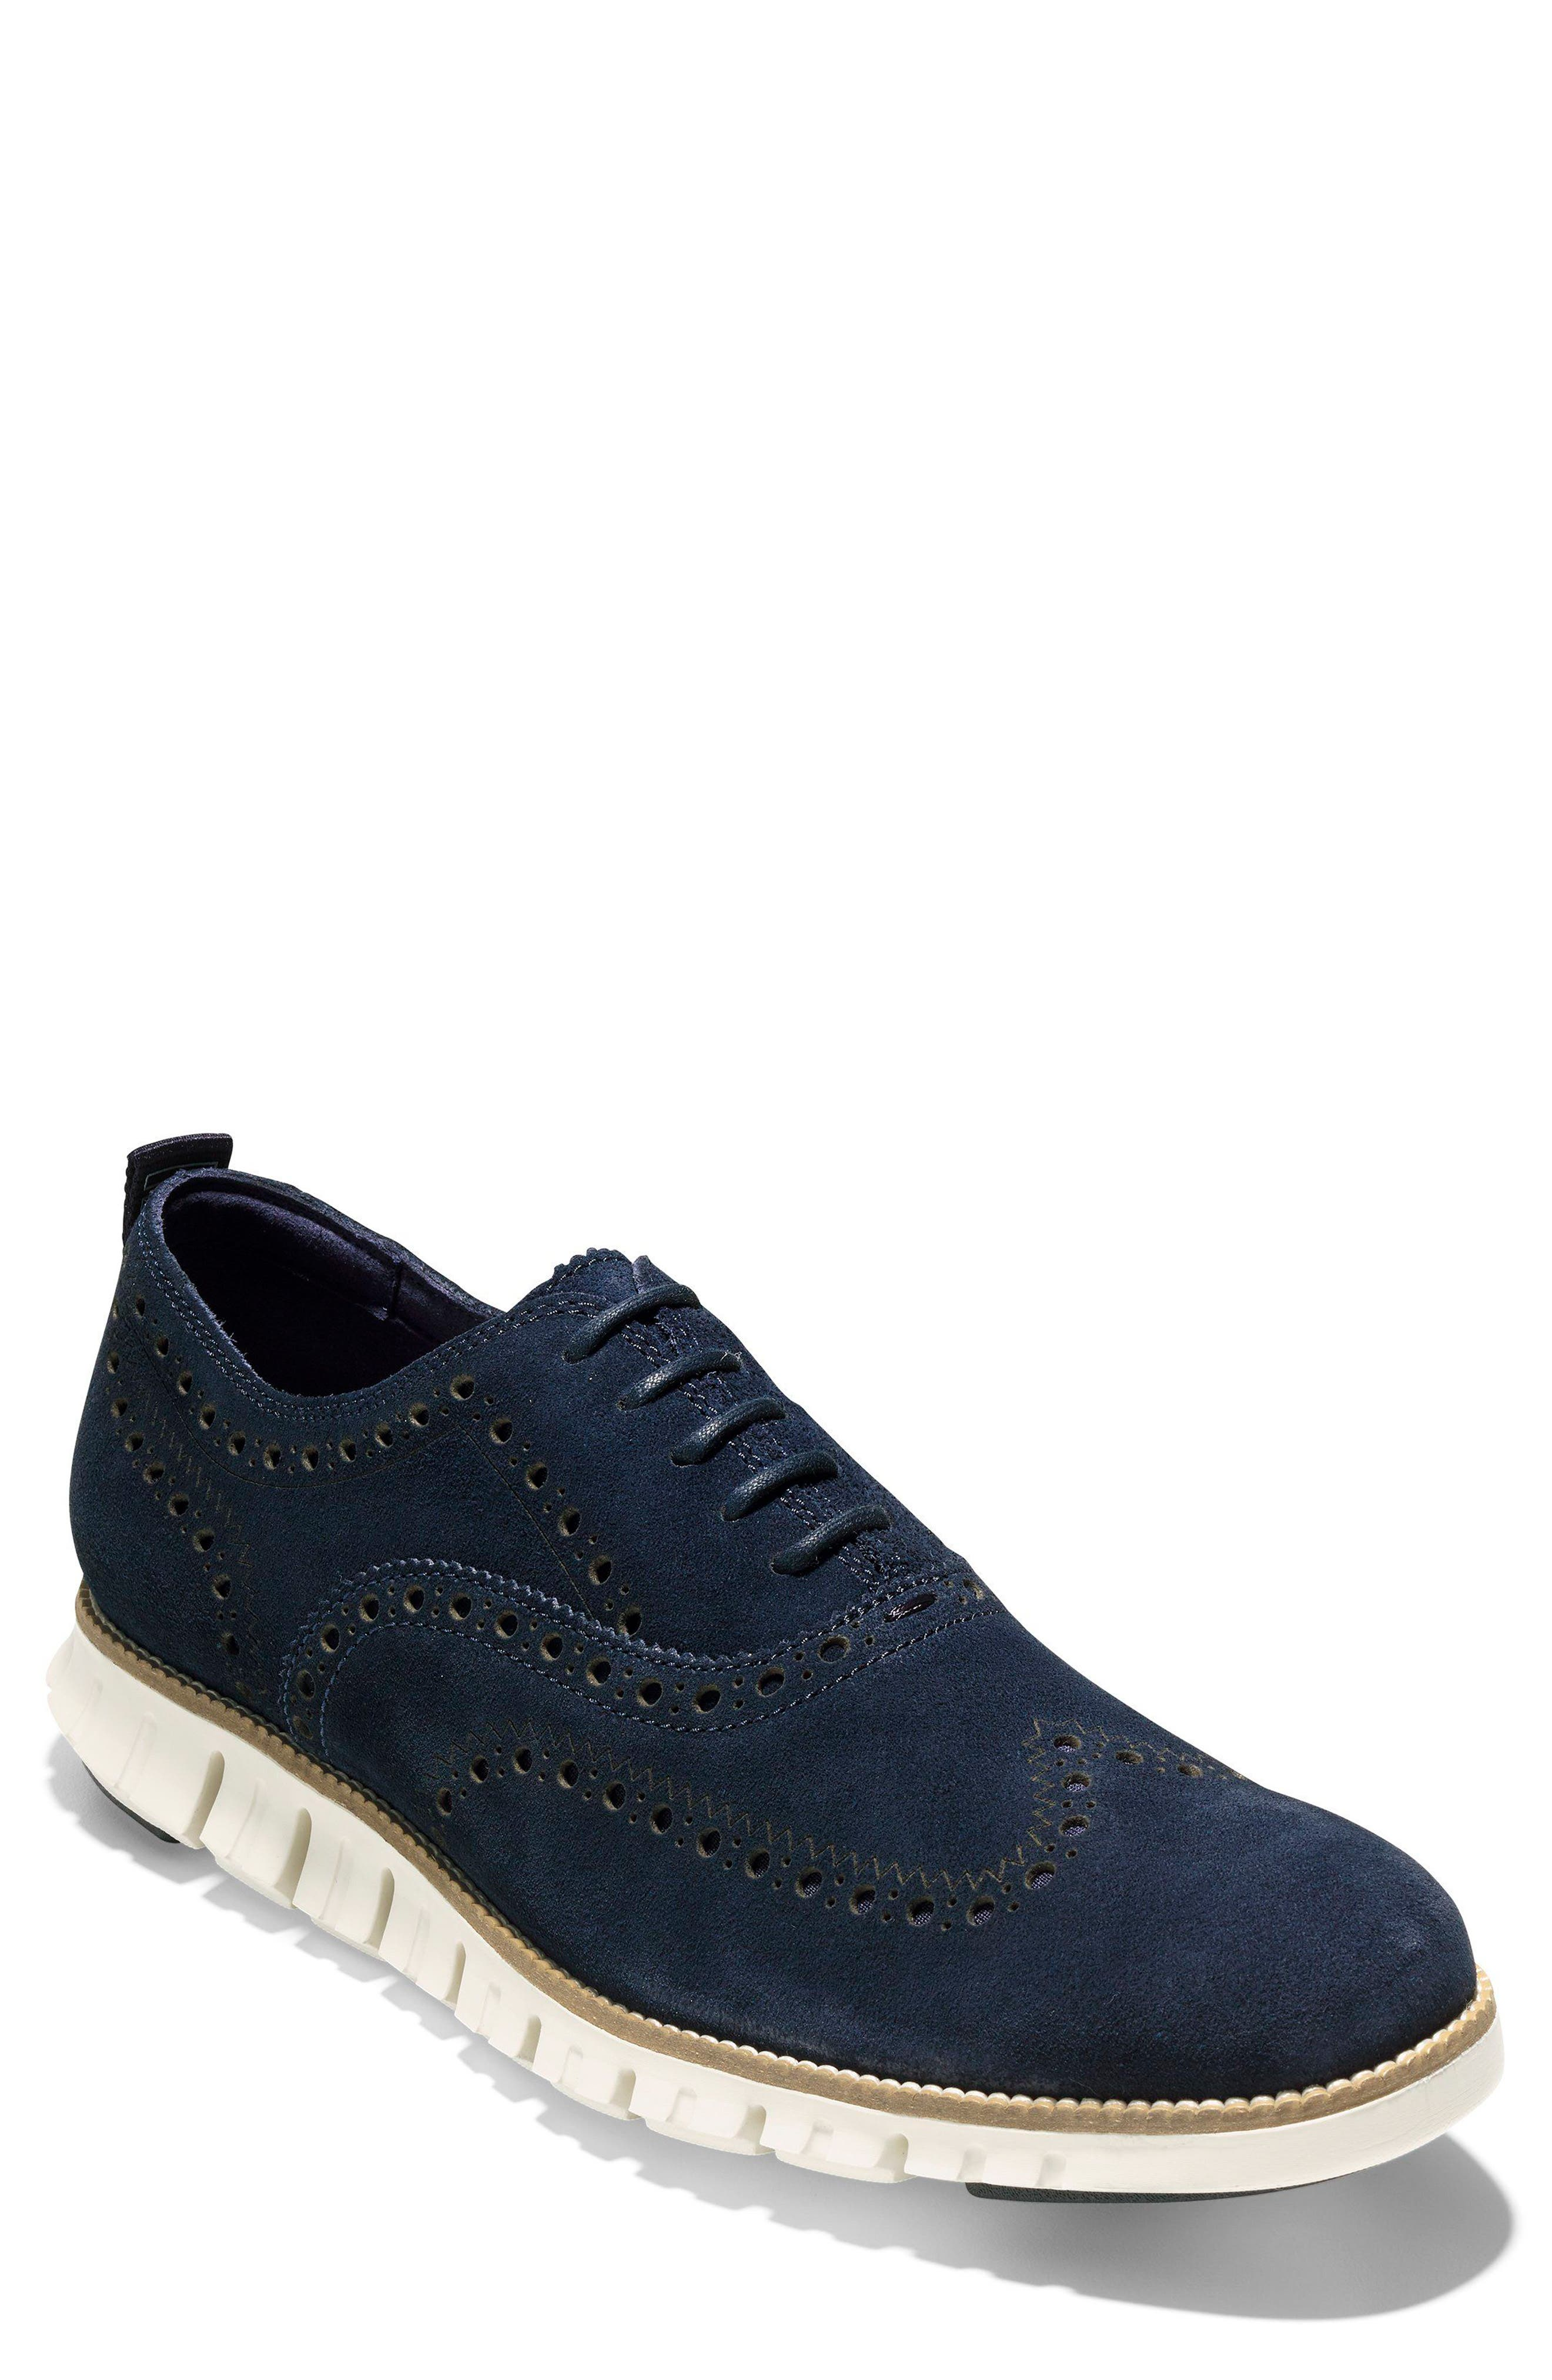 'ZeroGrand' Wingtip Oxford,                             Main thumbnail 1, color,                             Navy Suede